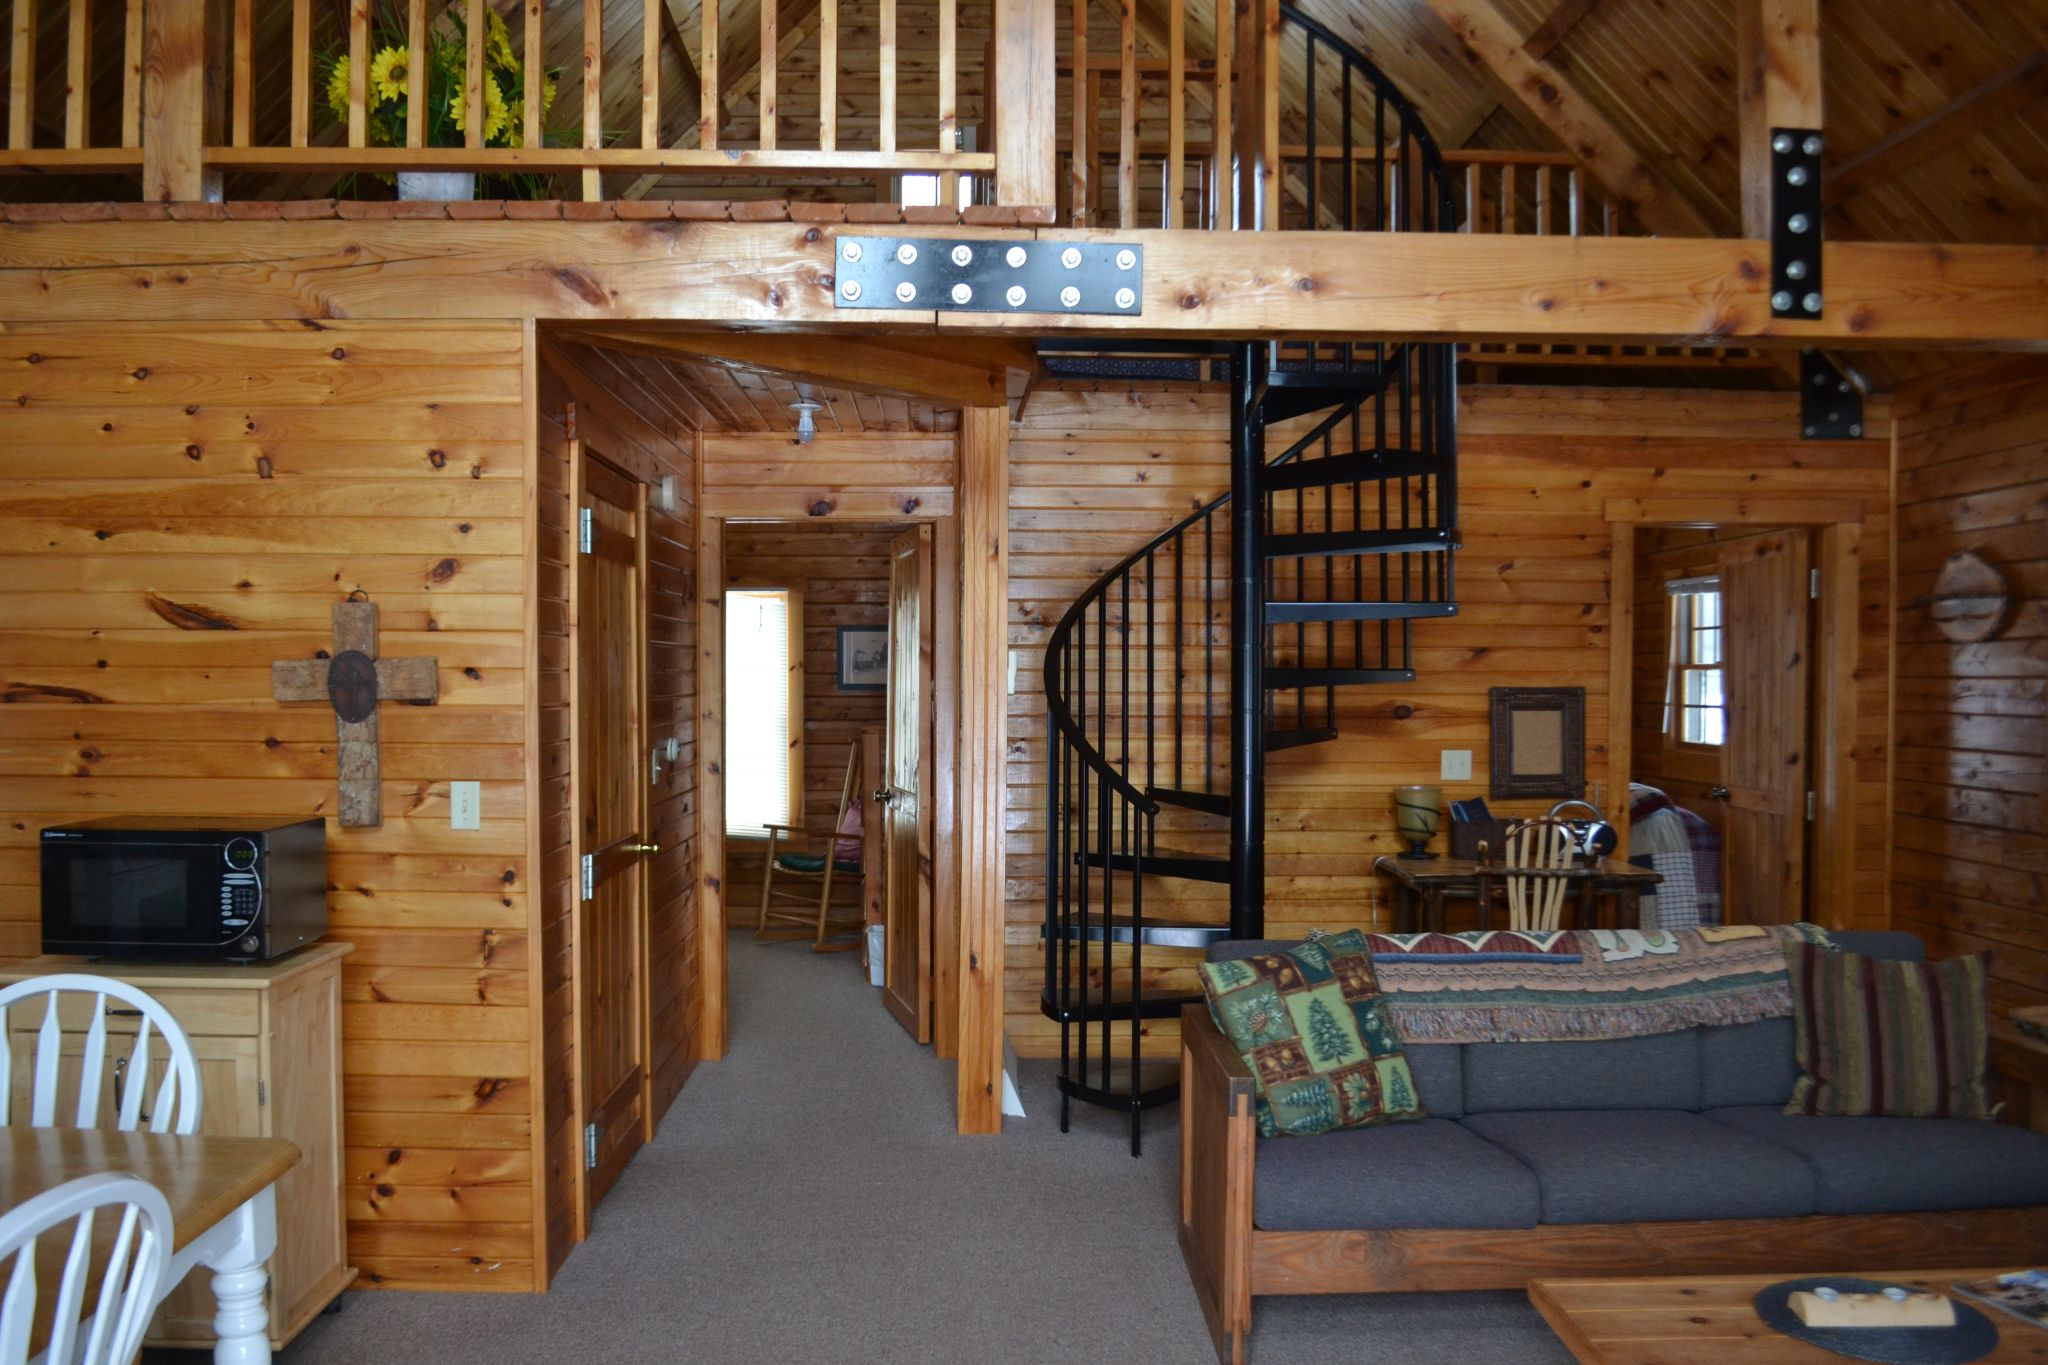 Captivating The Cabin Is Reserved For The Speakers Of Summer Camps, Retreats, And  Events. It Is Also Used As A Retreat For Pastors And Their Families.